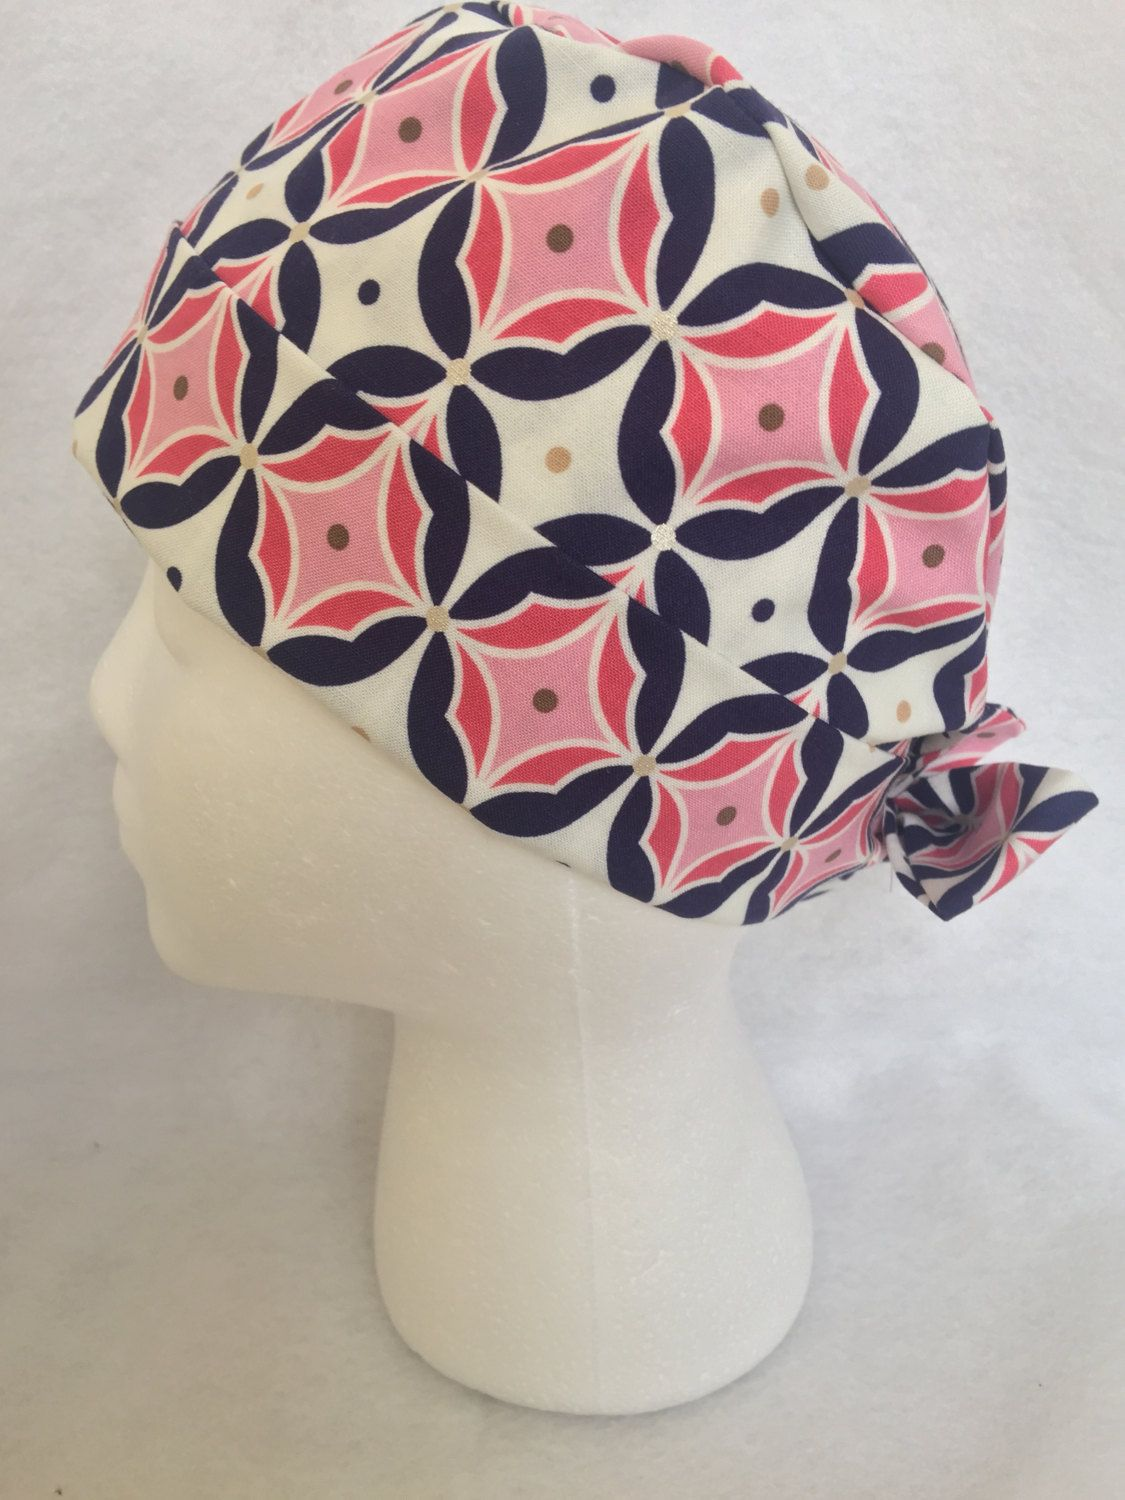 Pink geometric pattern with gold and silver accents pattern surgical cap. Pixie or chemo scrub hat. Tie back. Cute women surgical cap by SerendipityCaps on Etsy https://www.etsy.com/listing/216223371/pink-geometric-pattern-with-gold-and